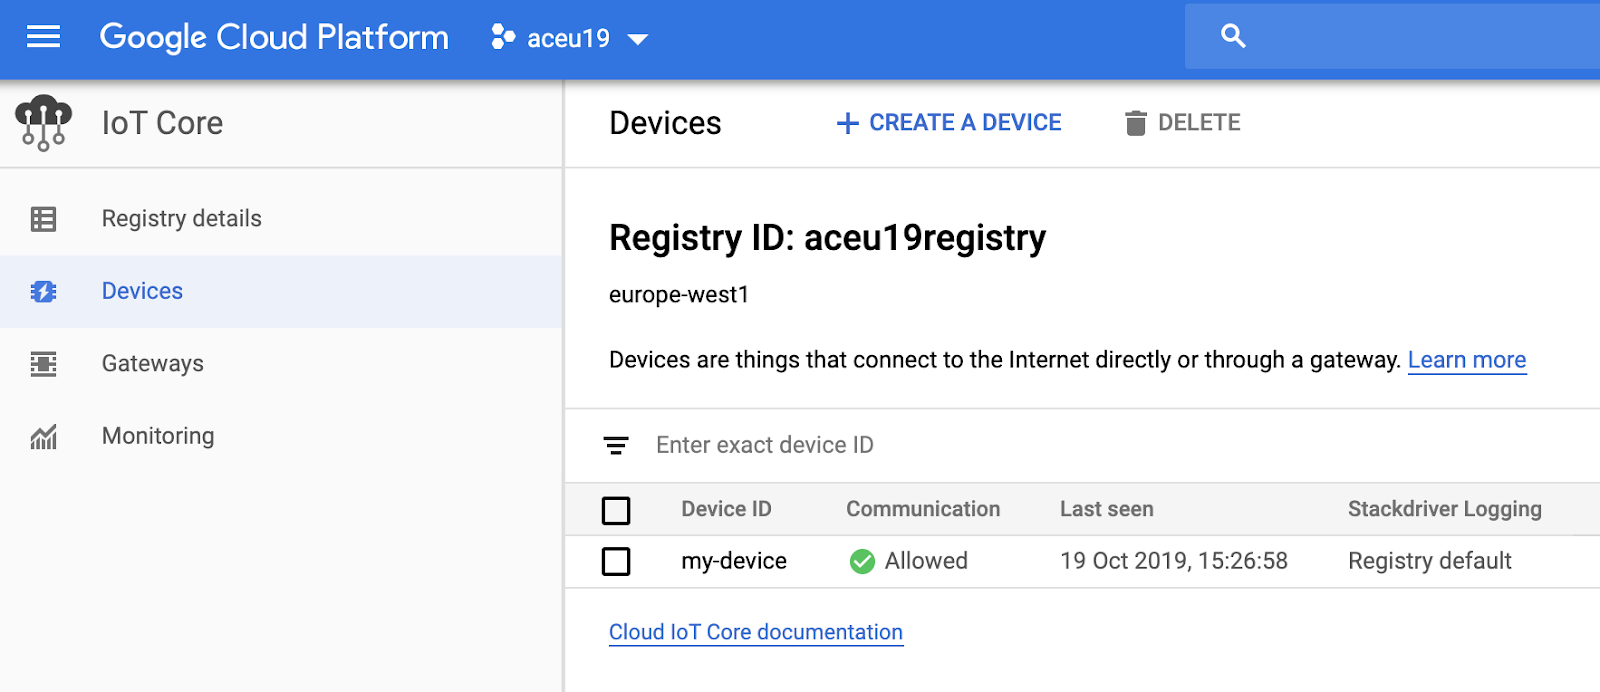 My device is registered in my device registry